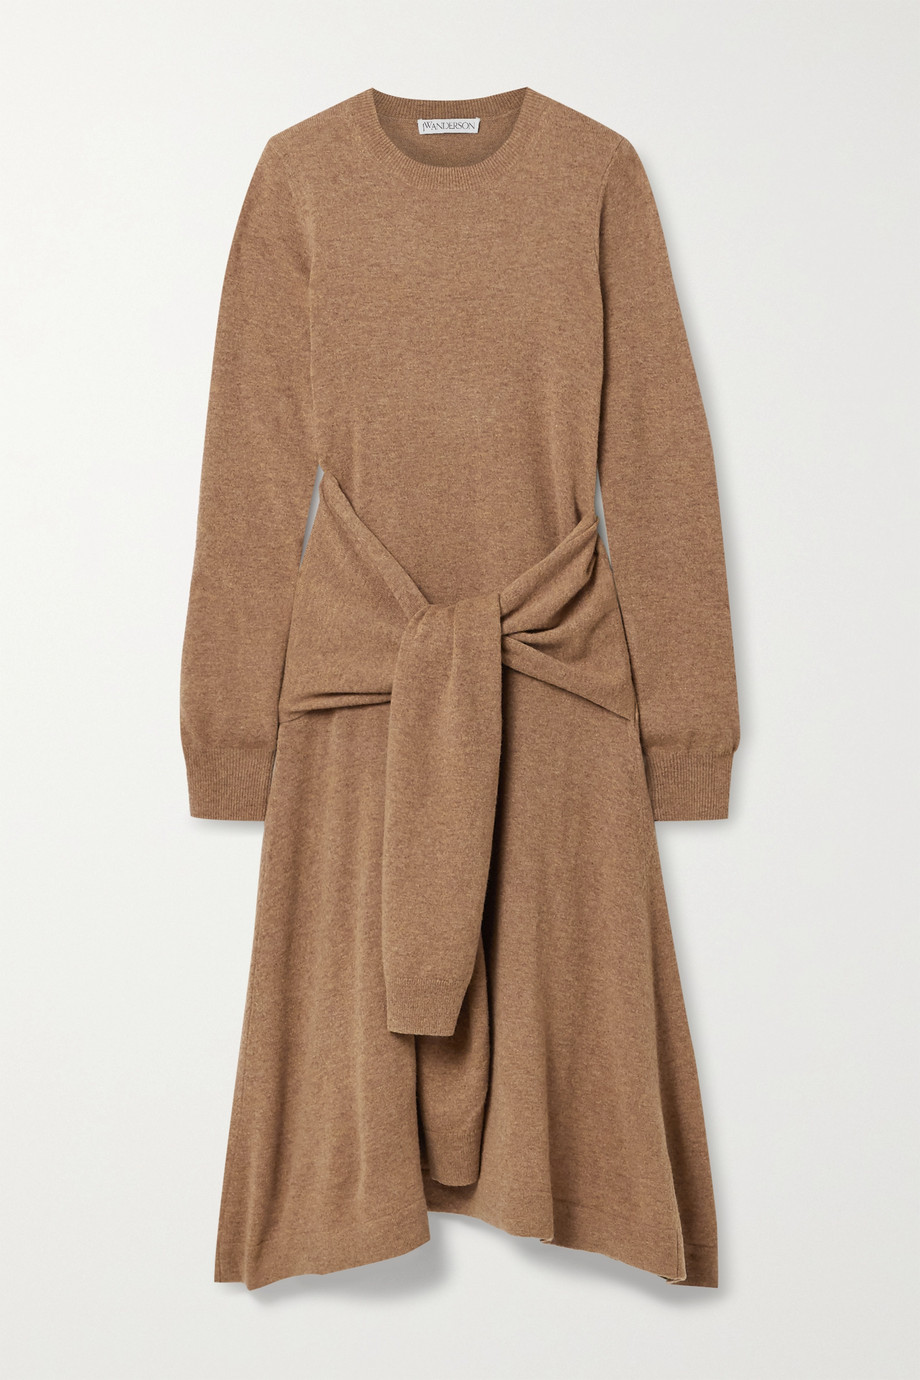 JW Anderson Tie-front wool midi dress